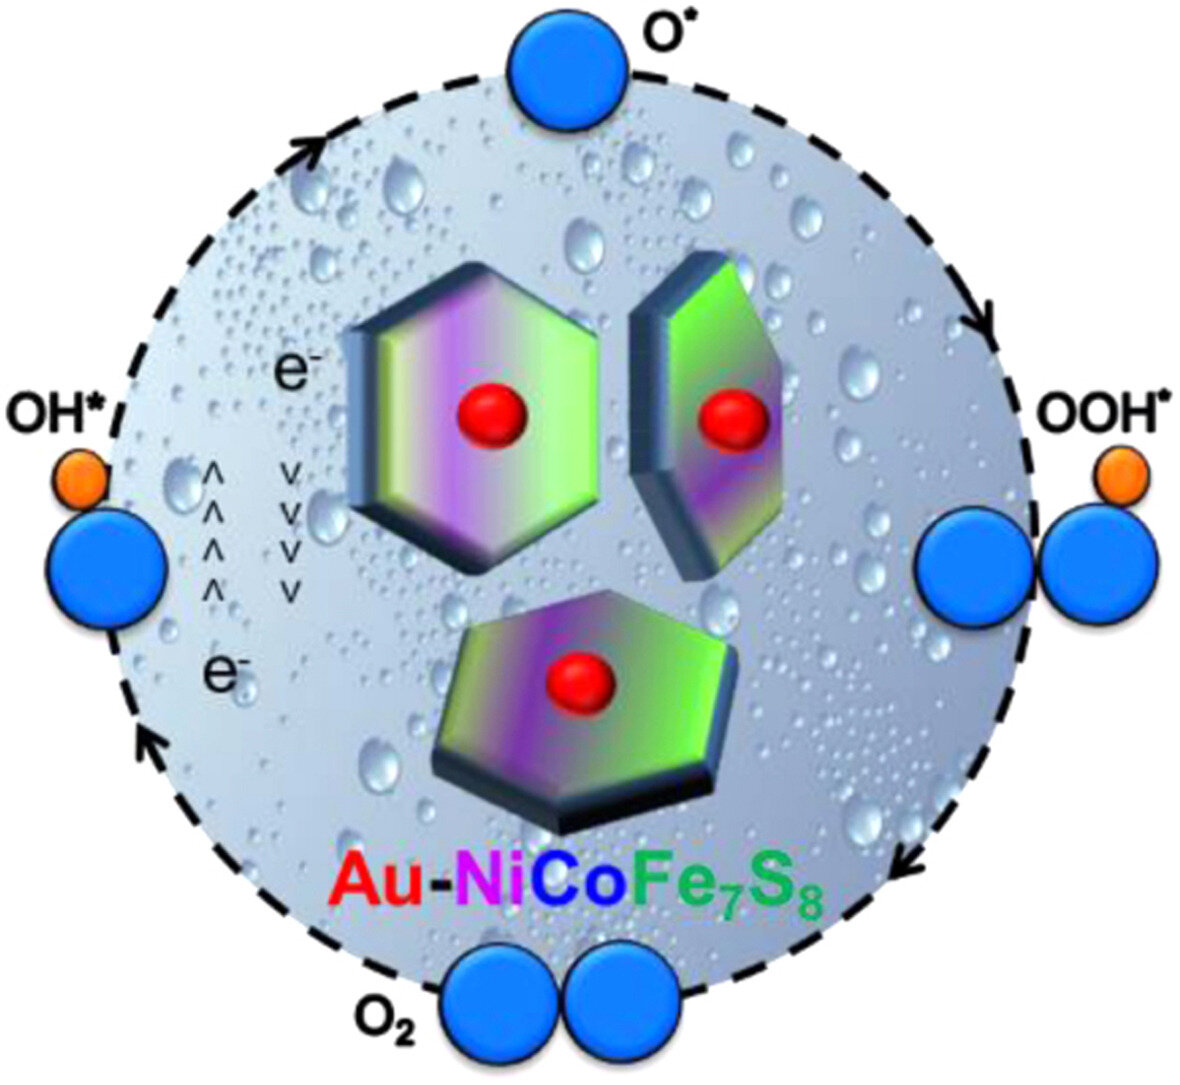 Game-changer for clean hydrogen production